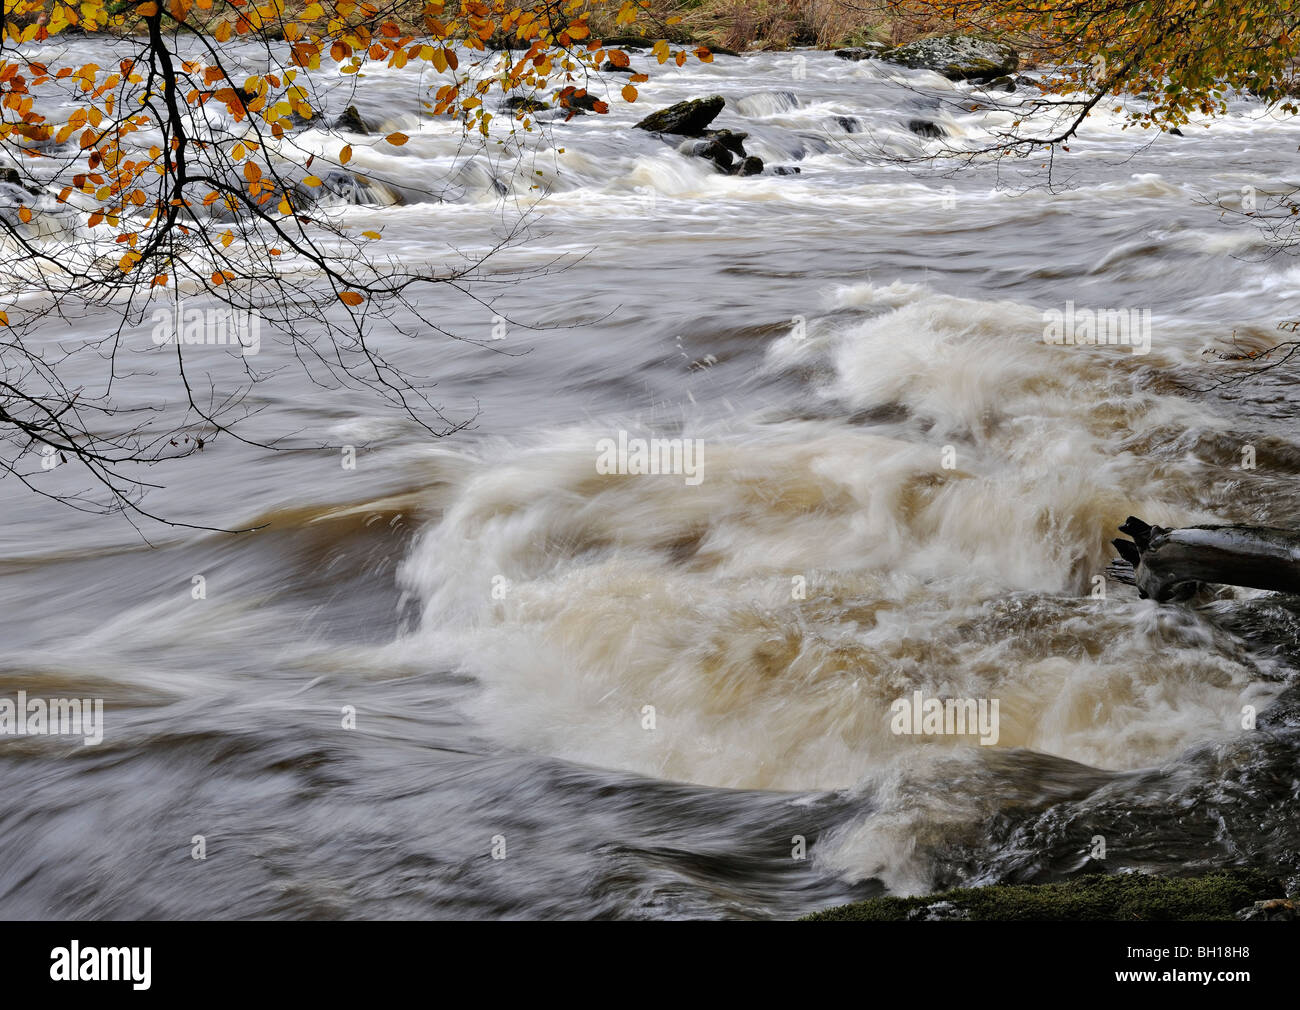 Beech leaves in autumn colours overhang a vigorous standing wave in the River Dochart near Killin, Perthshire, Scotland, - Stock Image